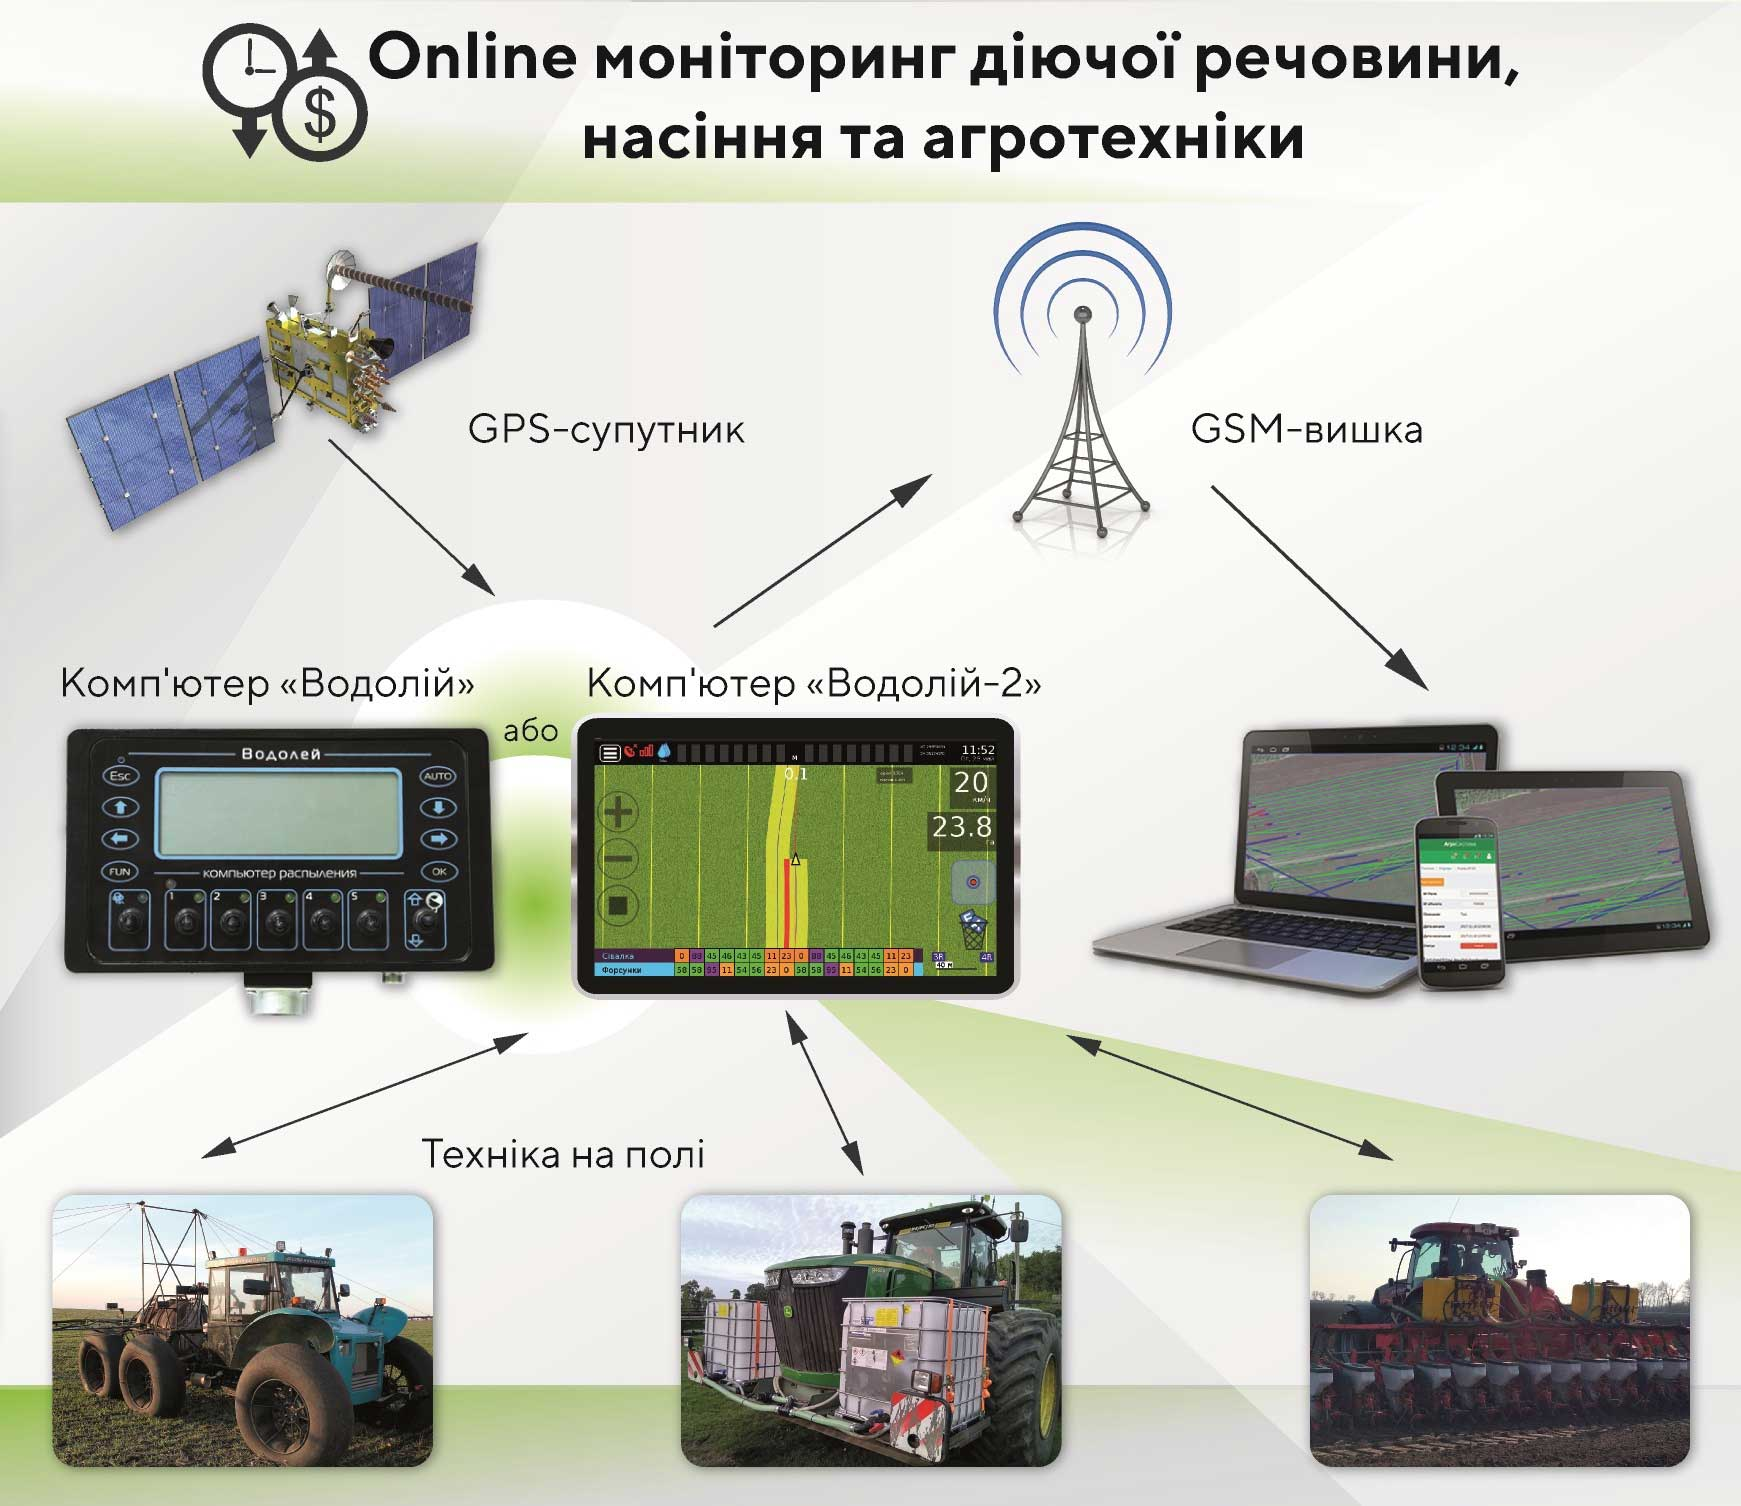 Principle of operation of the Agro-system